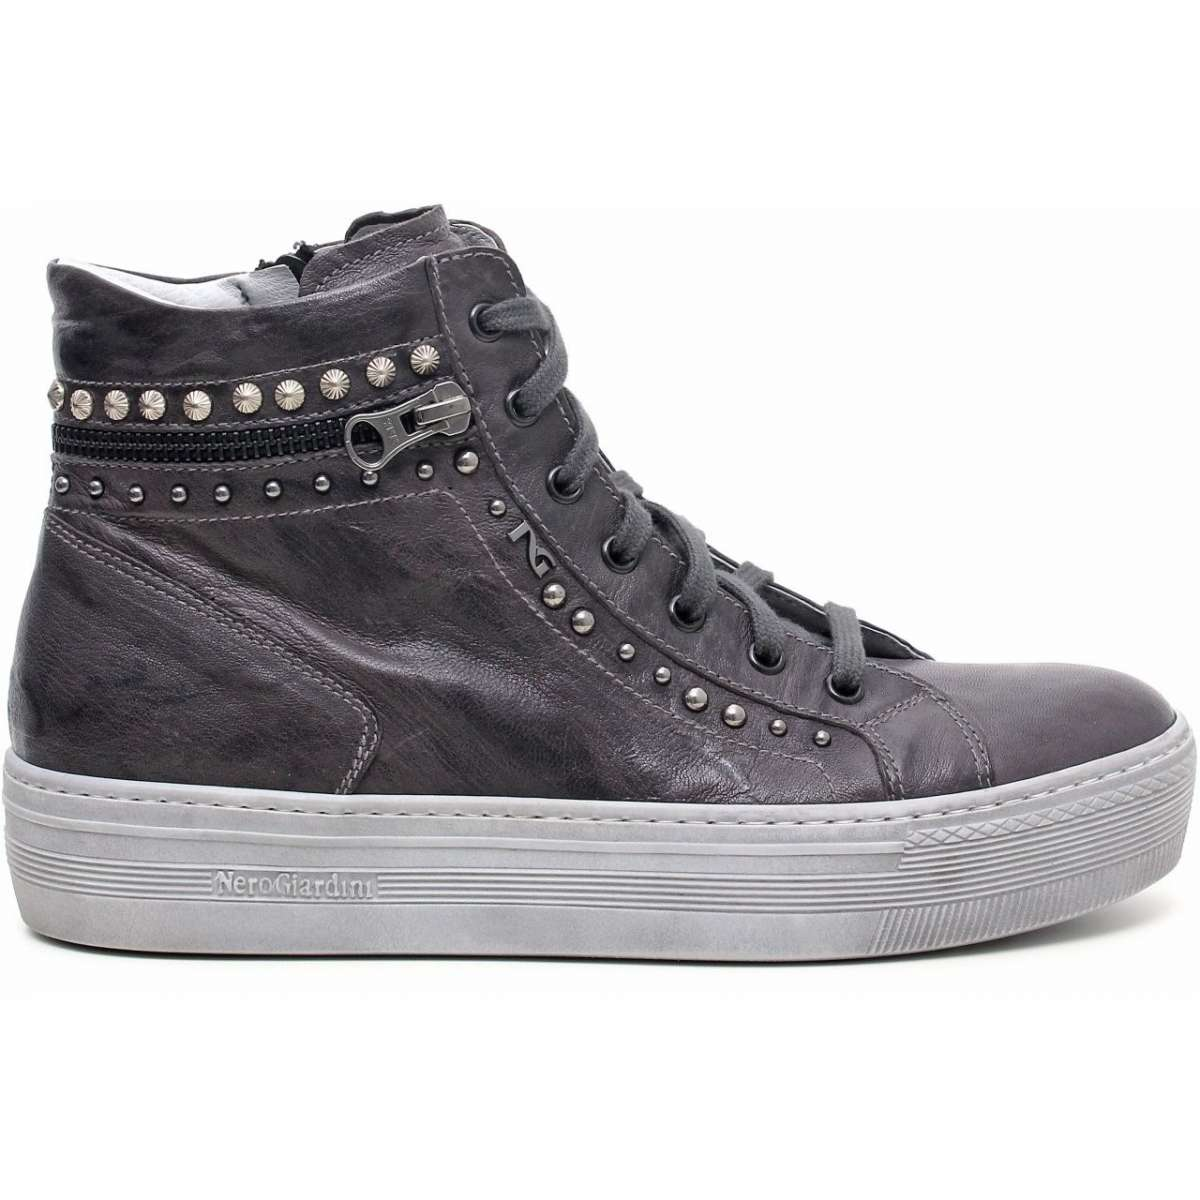 Sneakers alte con borchie